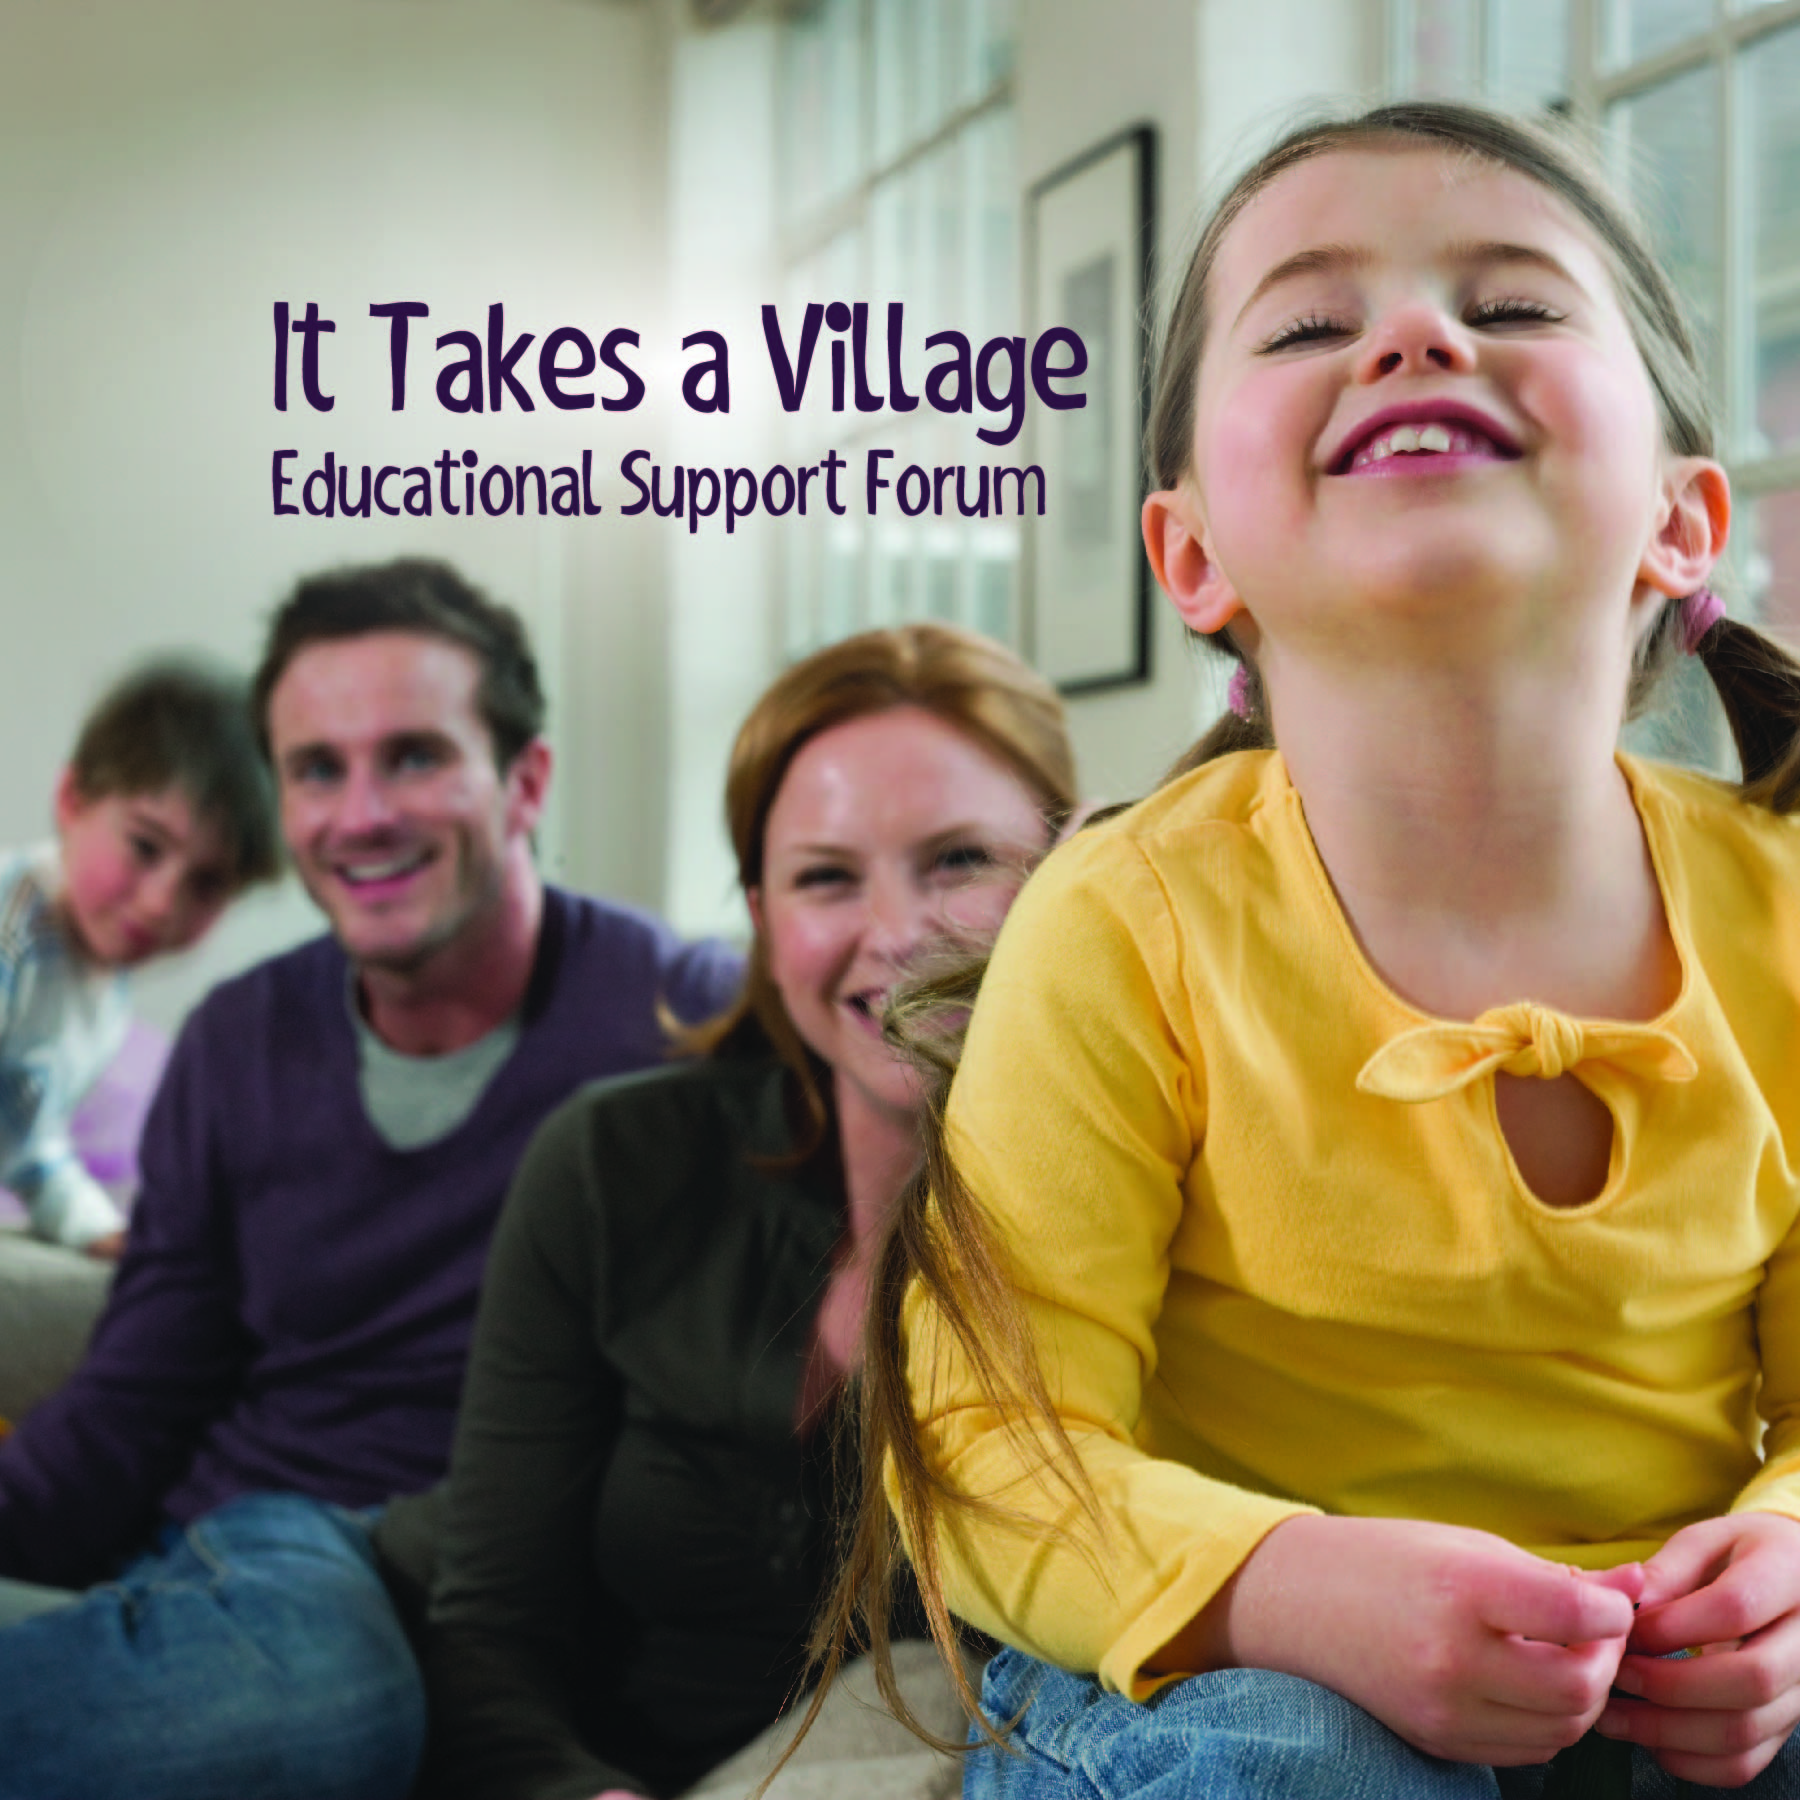 It Takes a Village: an Education Support forum